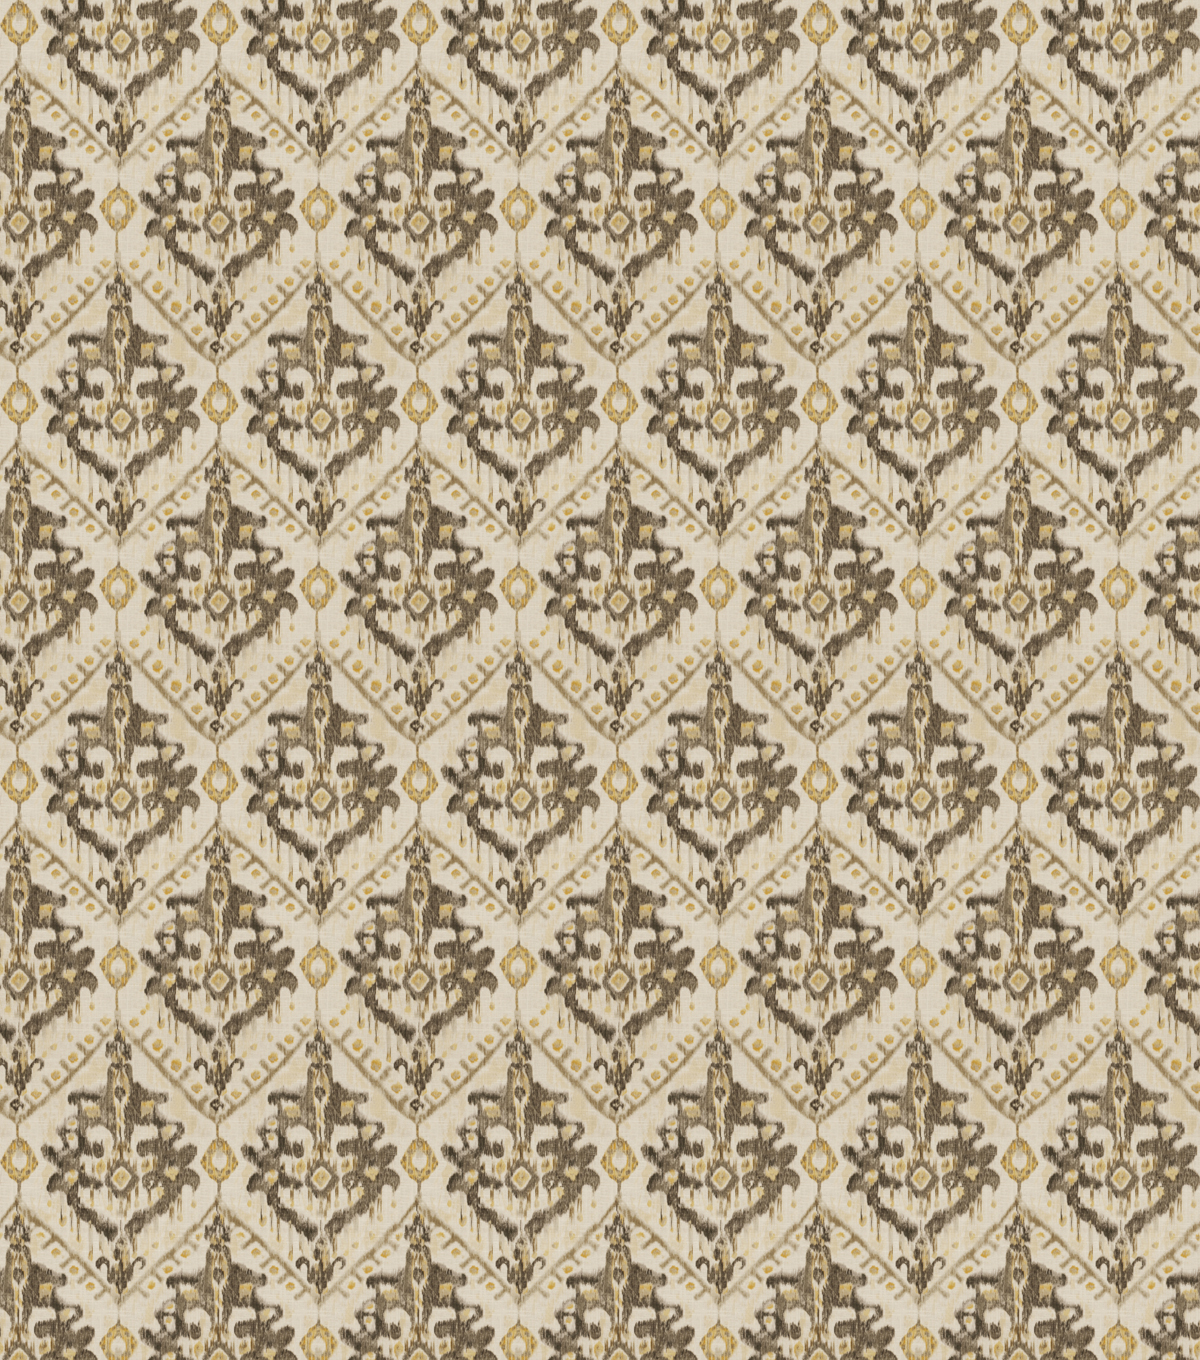 SMC Designs Multi-Purpose Decor Fabric 54\u0022-Lobo/Tide